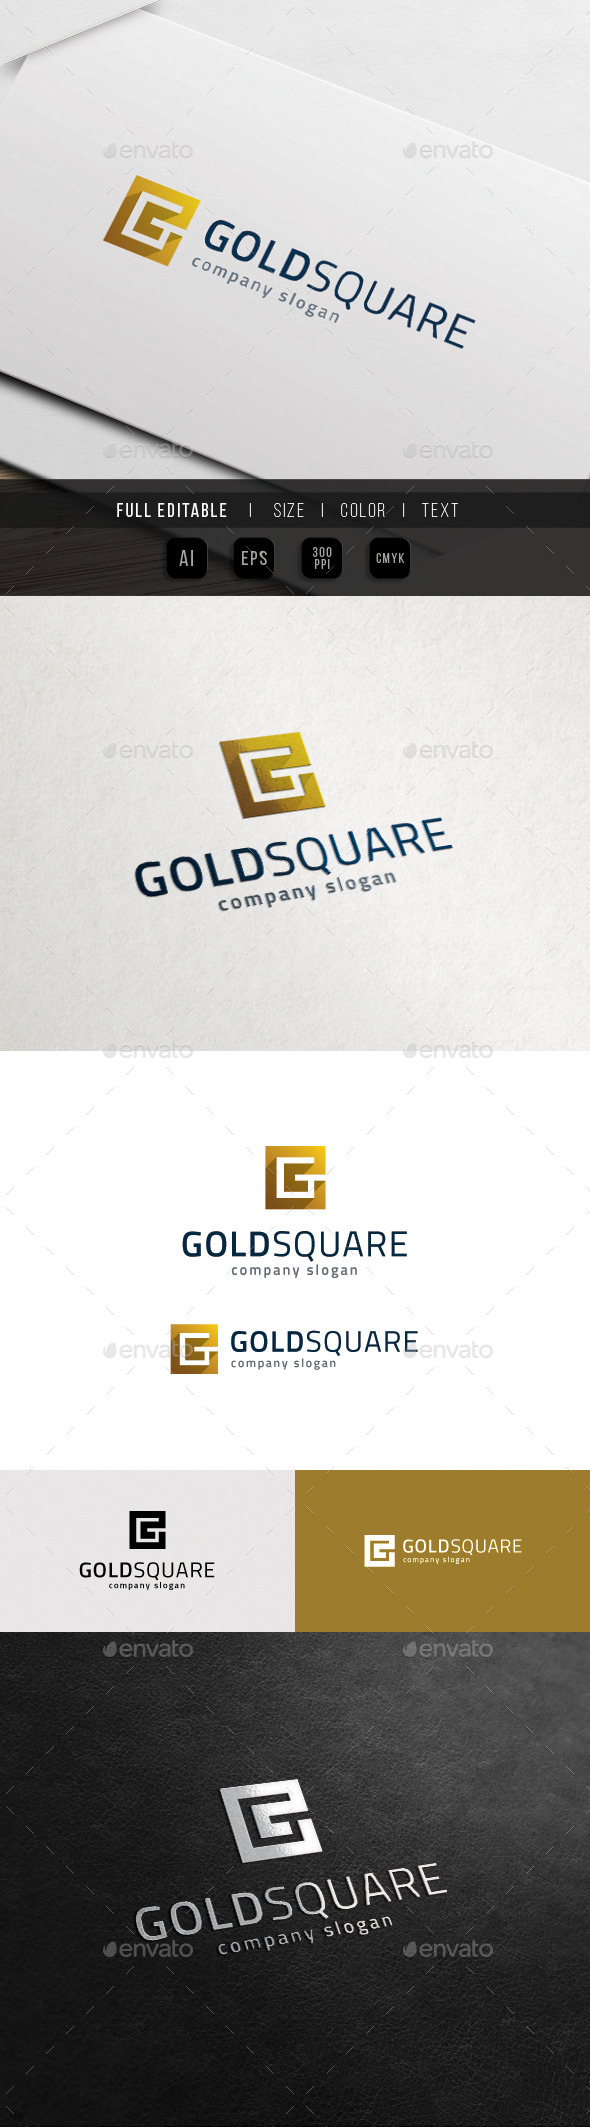 G Logo - Golden Square Group - Letters Logo Templates